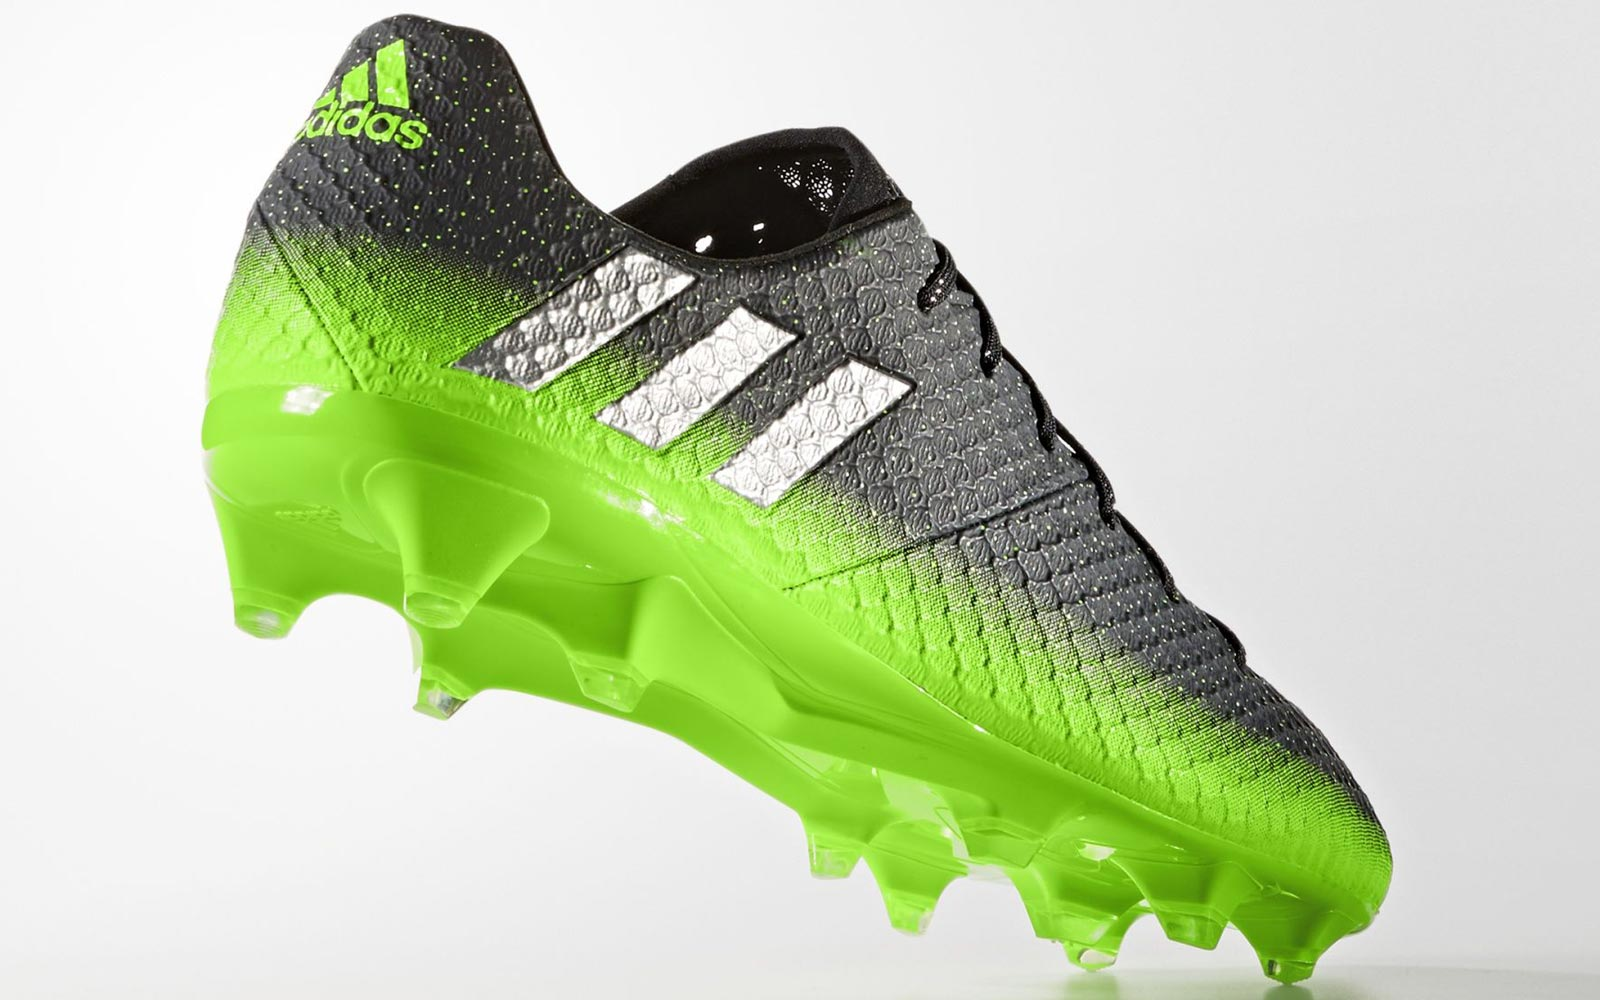 adidas-messi-16-1-space-dust-boots-6